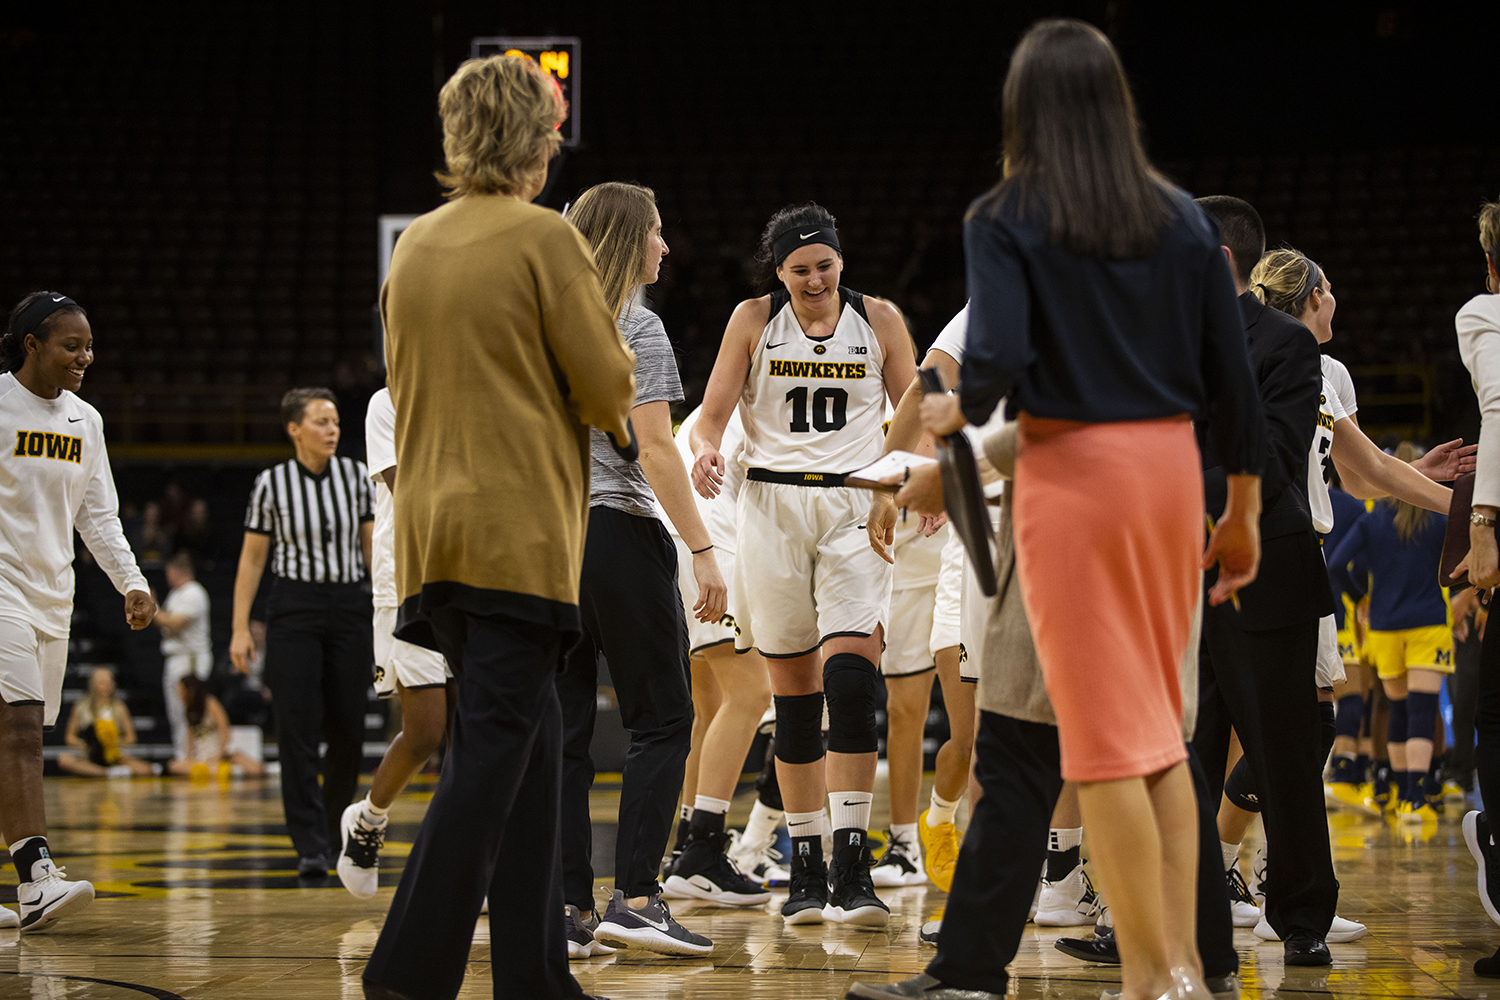 Iowa+forward+Megan+Gustafson+reacts+during+the+Iowa%2FMichigan+women%27s+basketball+game+at+Carver-Hawkeye+Arena+on+Thursday%2C+January+17%2C+2019.+The+Hawkeyes+defeated+the+Wolverines%2C+75-61.+